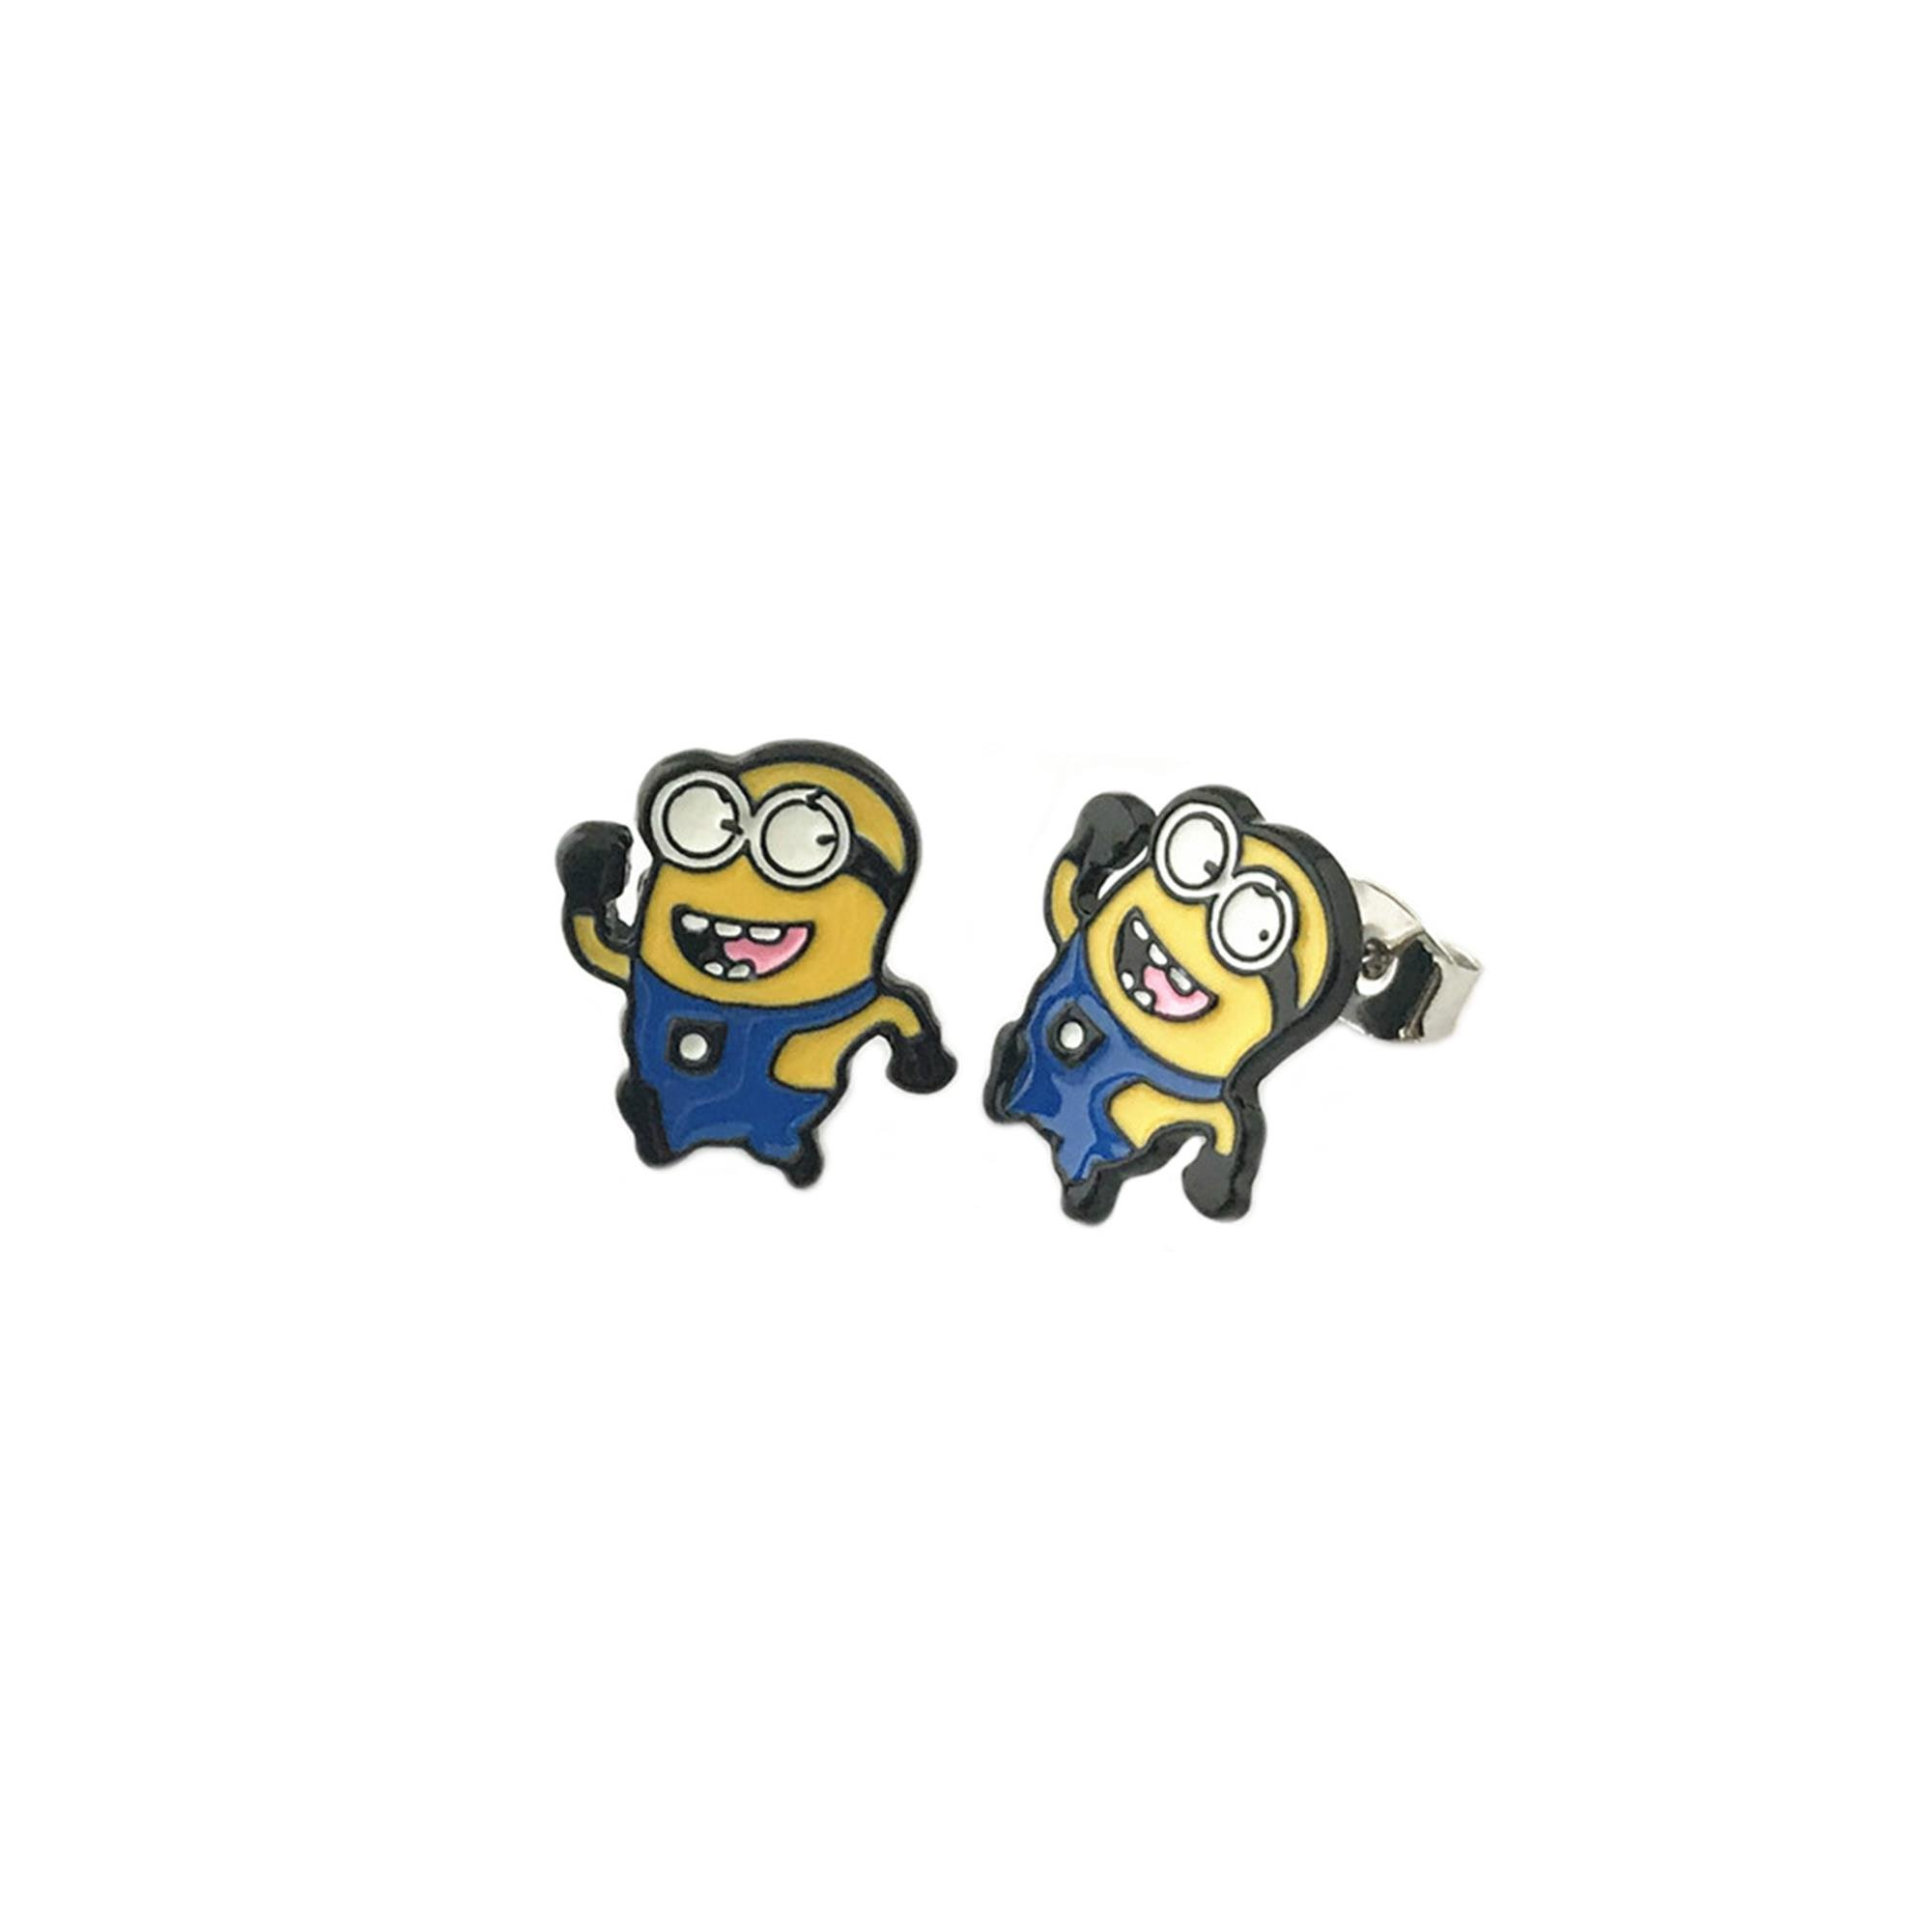 Despicable Me Minions Post Earrings w/Gift Box By Superheroes